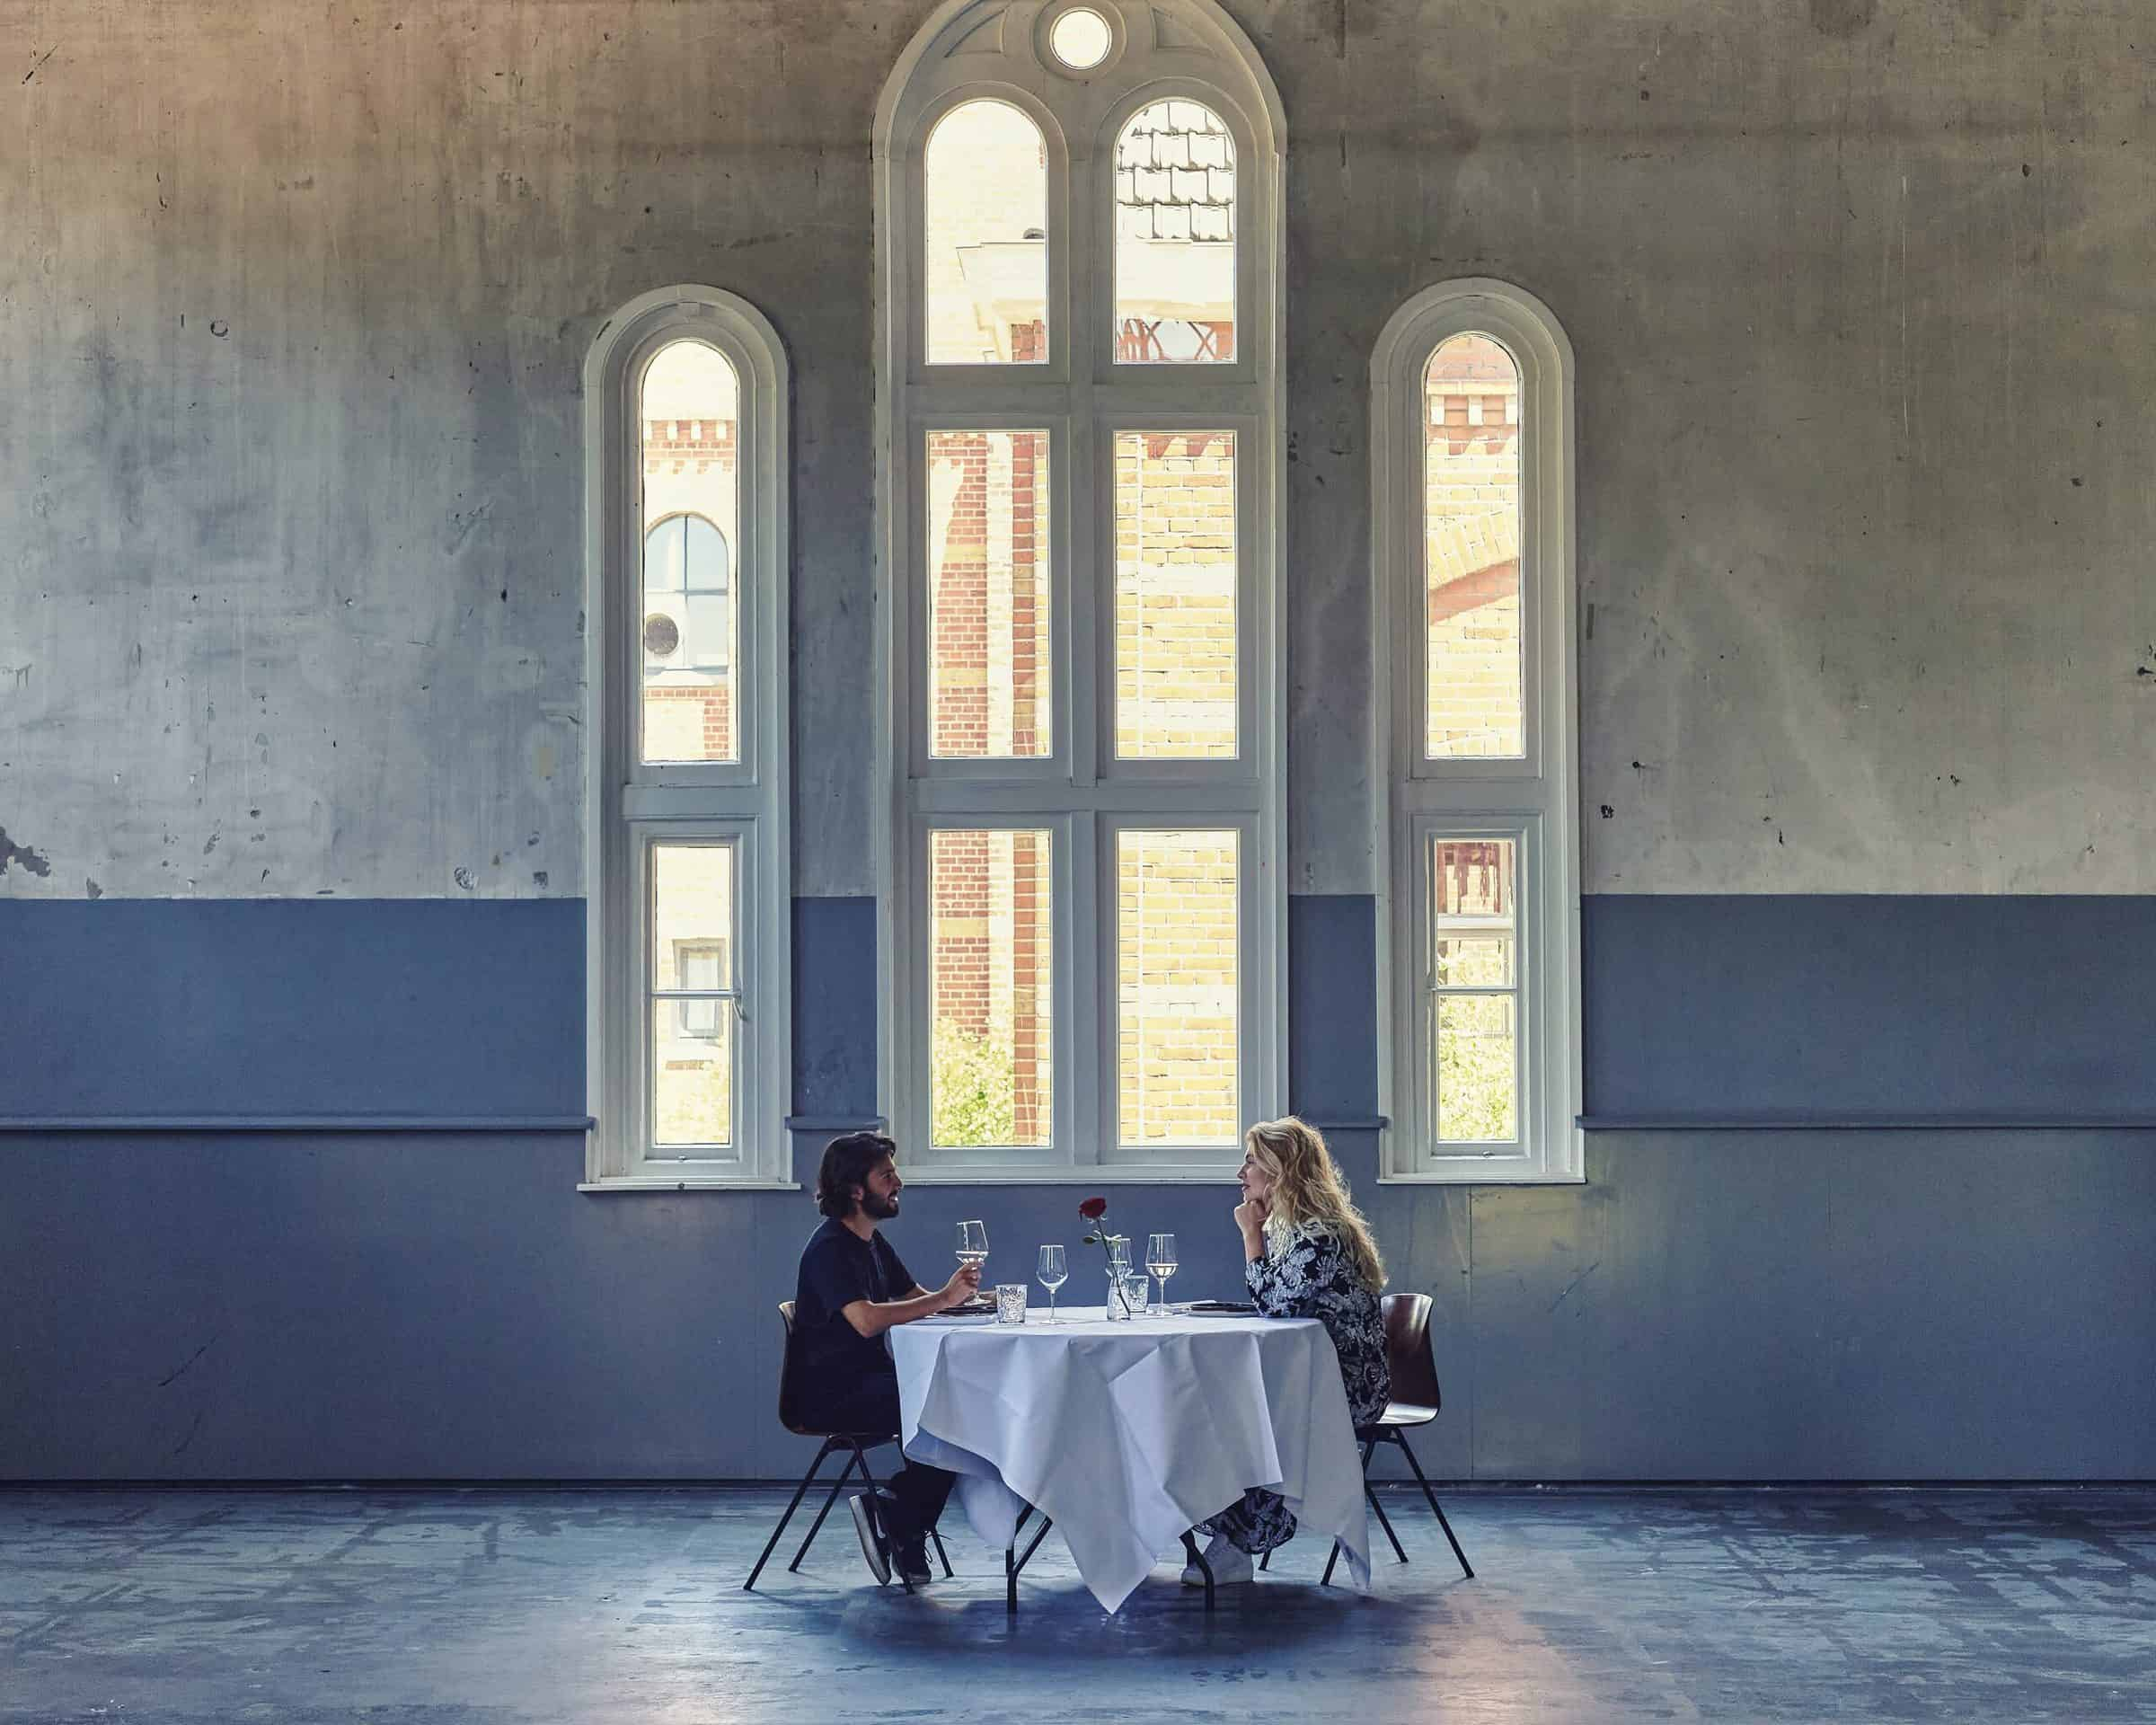 Table for two - the food line up - dineren - coronaproof - locatie - venue - food